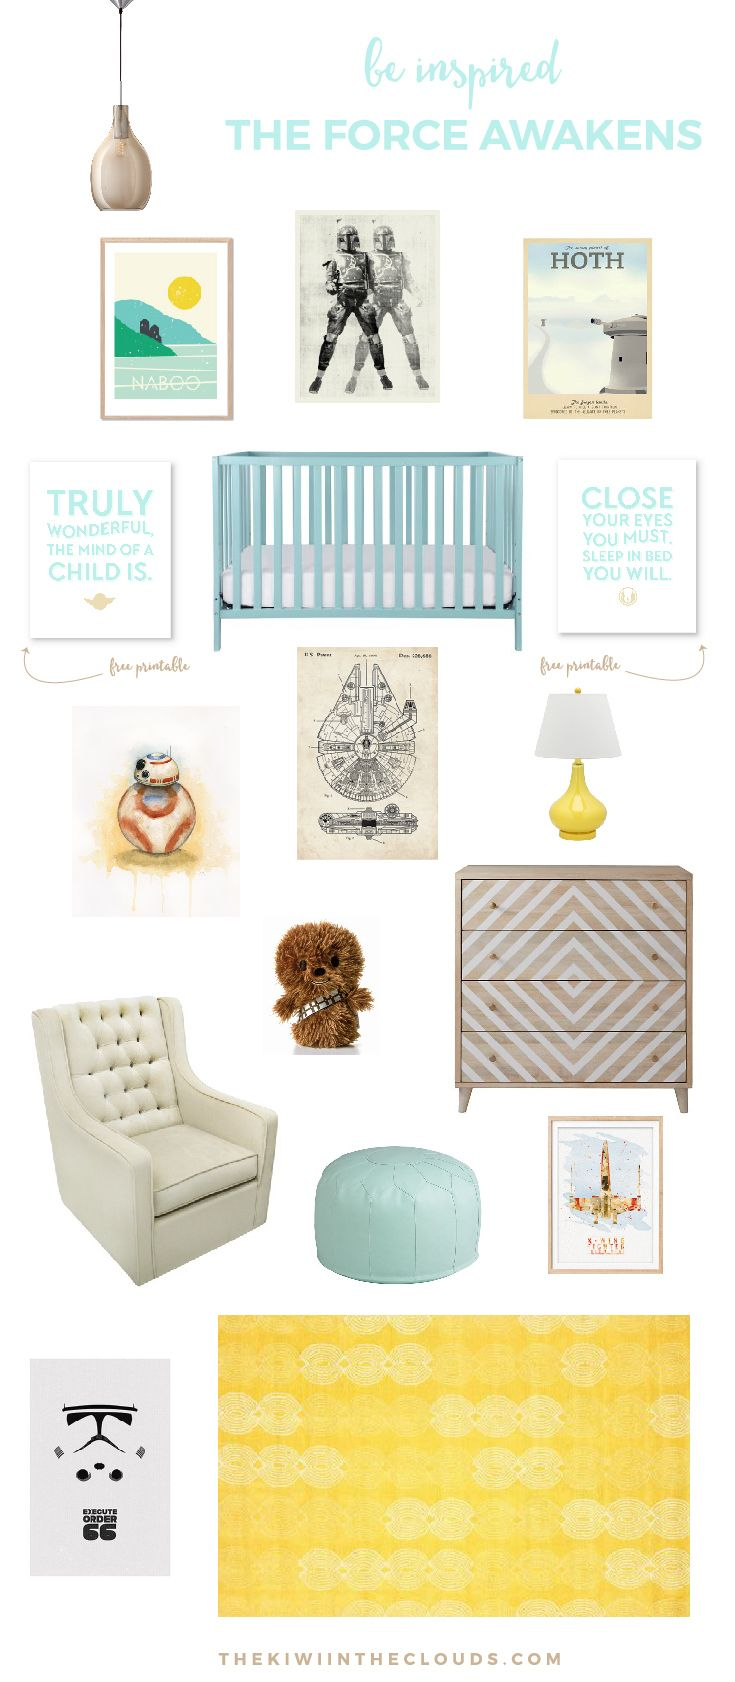 Top tips for making a baby s nursery special - Star Wars Nursery The Force Awakens Have You Caught The Star Wars Fever And